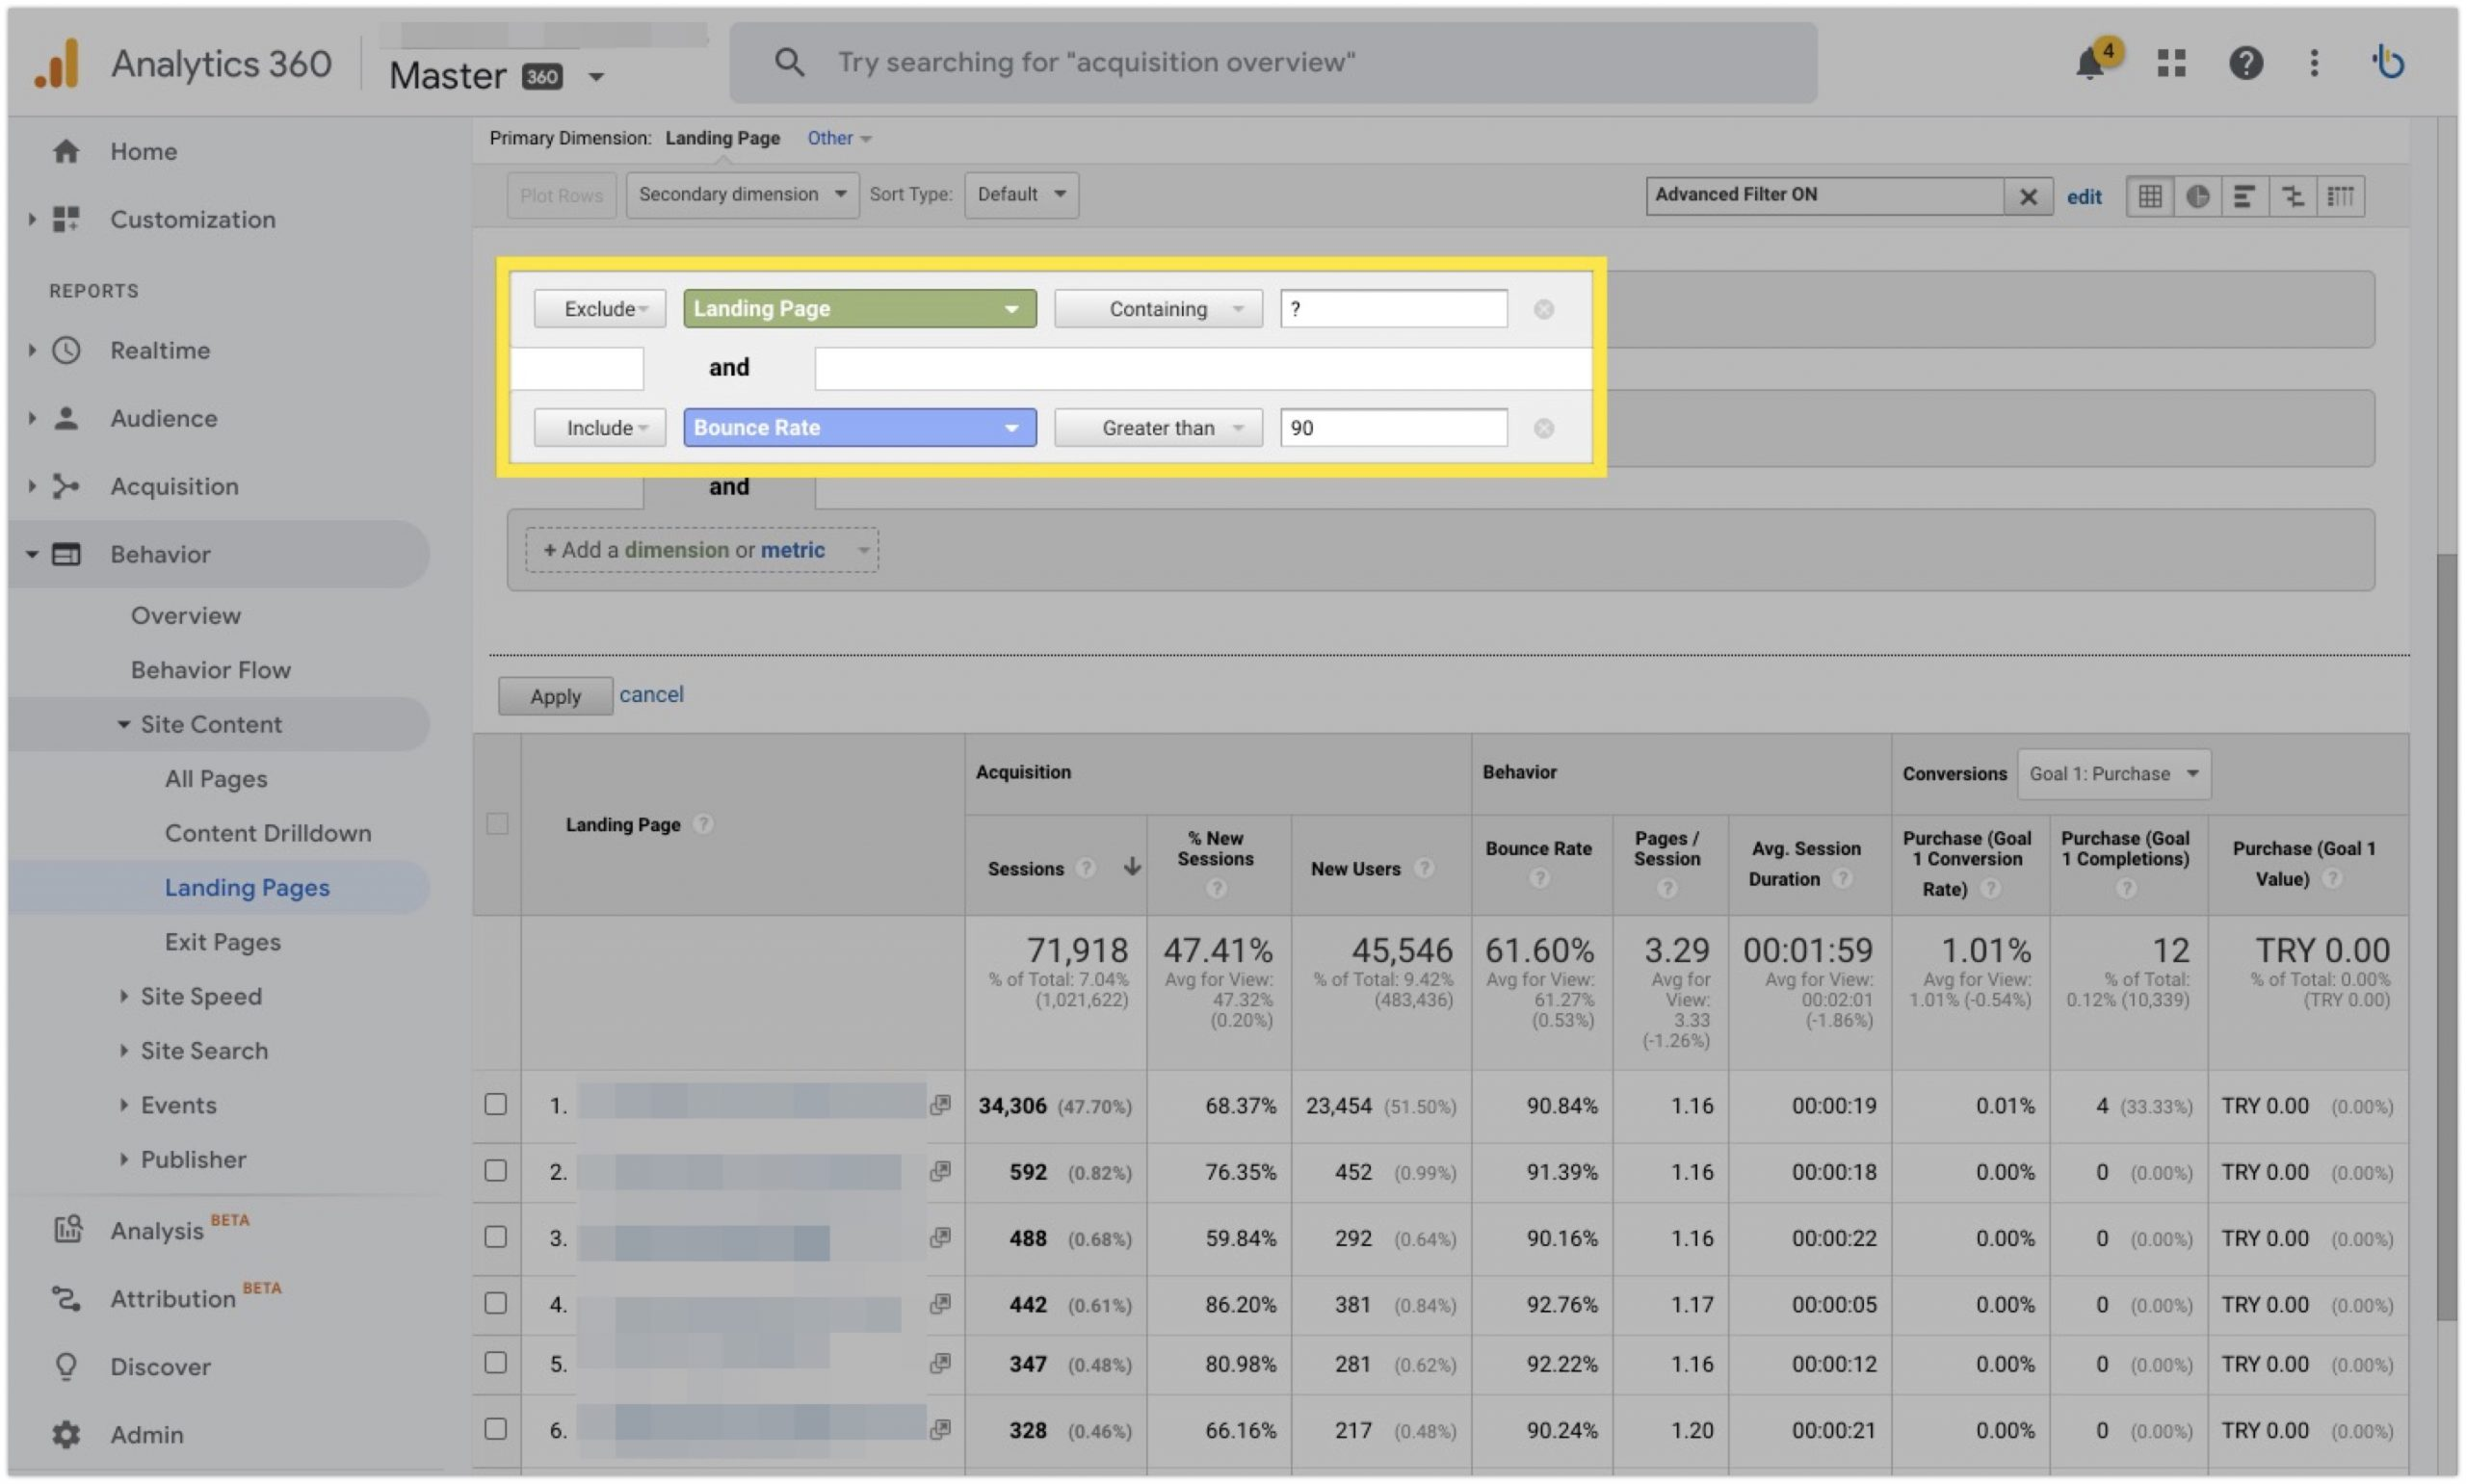 How to find thin content with Google Analytics?